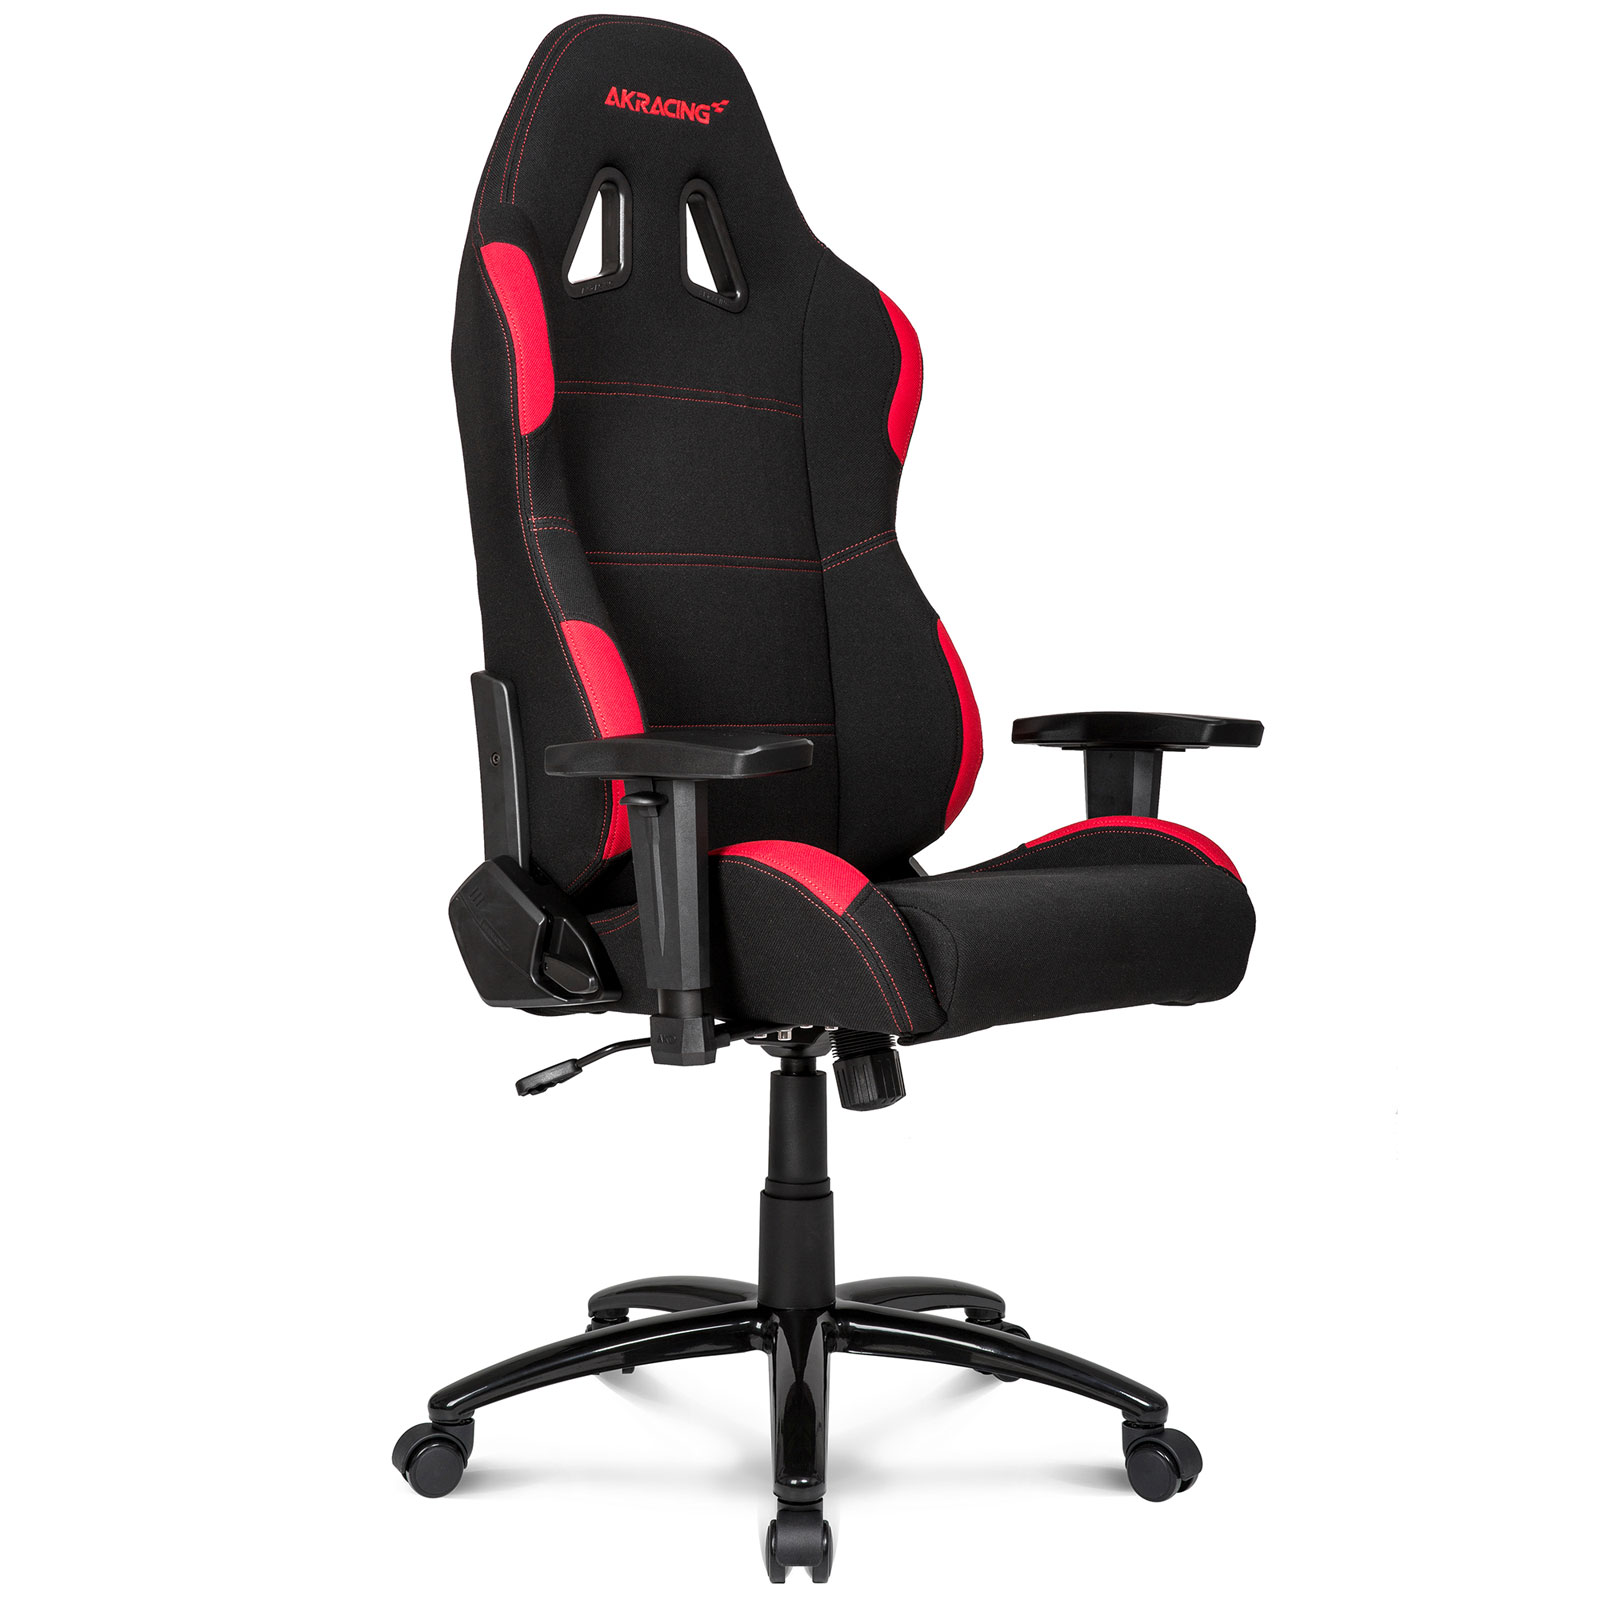 Akracing Gaming Chair Rouge Fauteuil Gamer Akracing Sur Ldlc Com